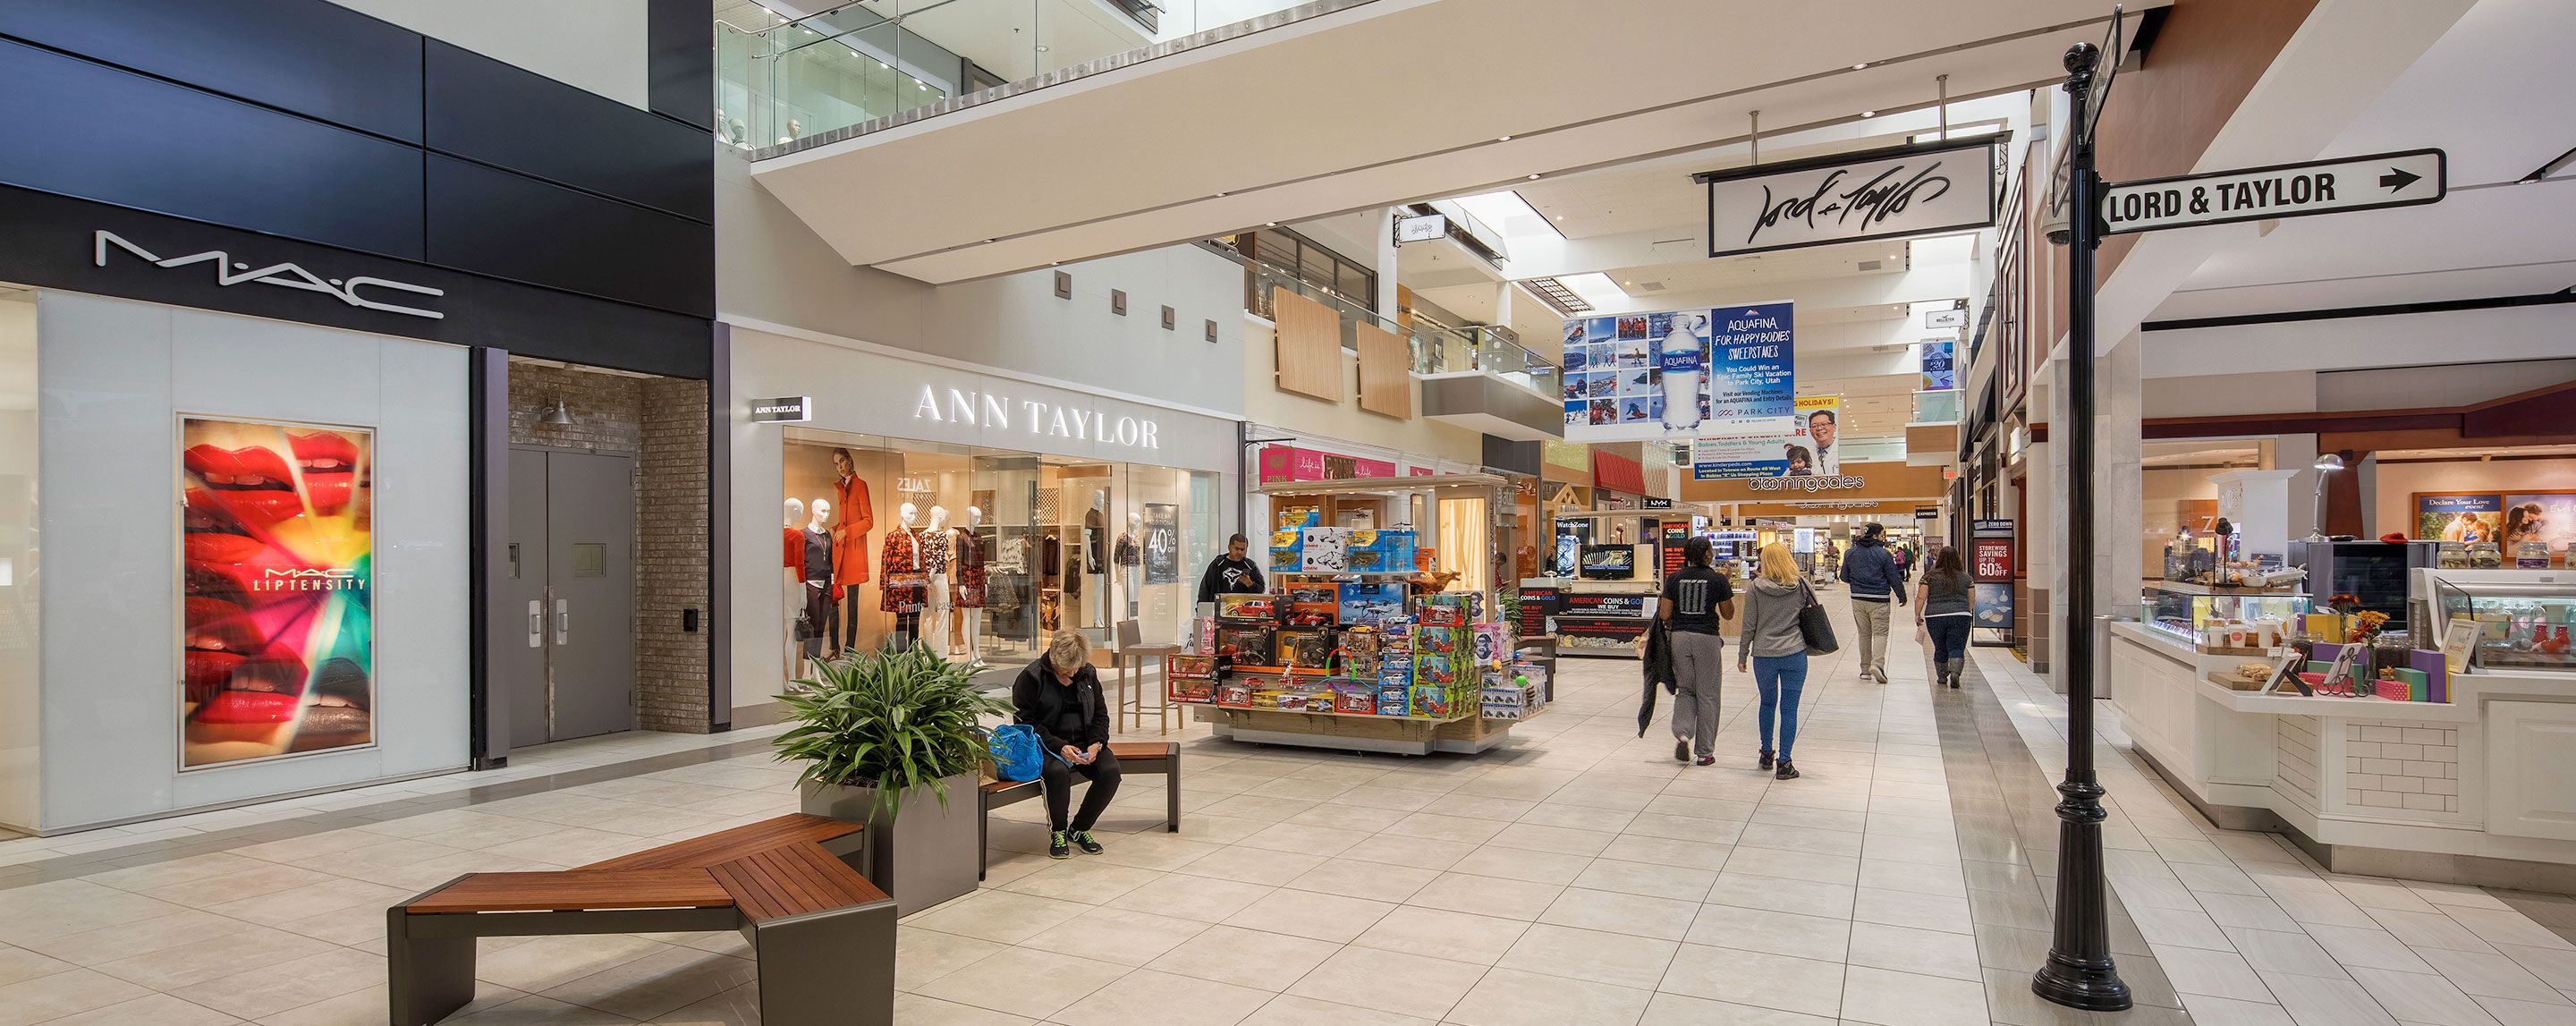 MAC and Ann Taylor are near a person on a bench and a toy kiosk at an indoor mall.